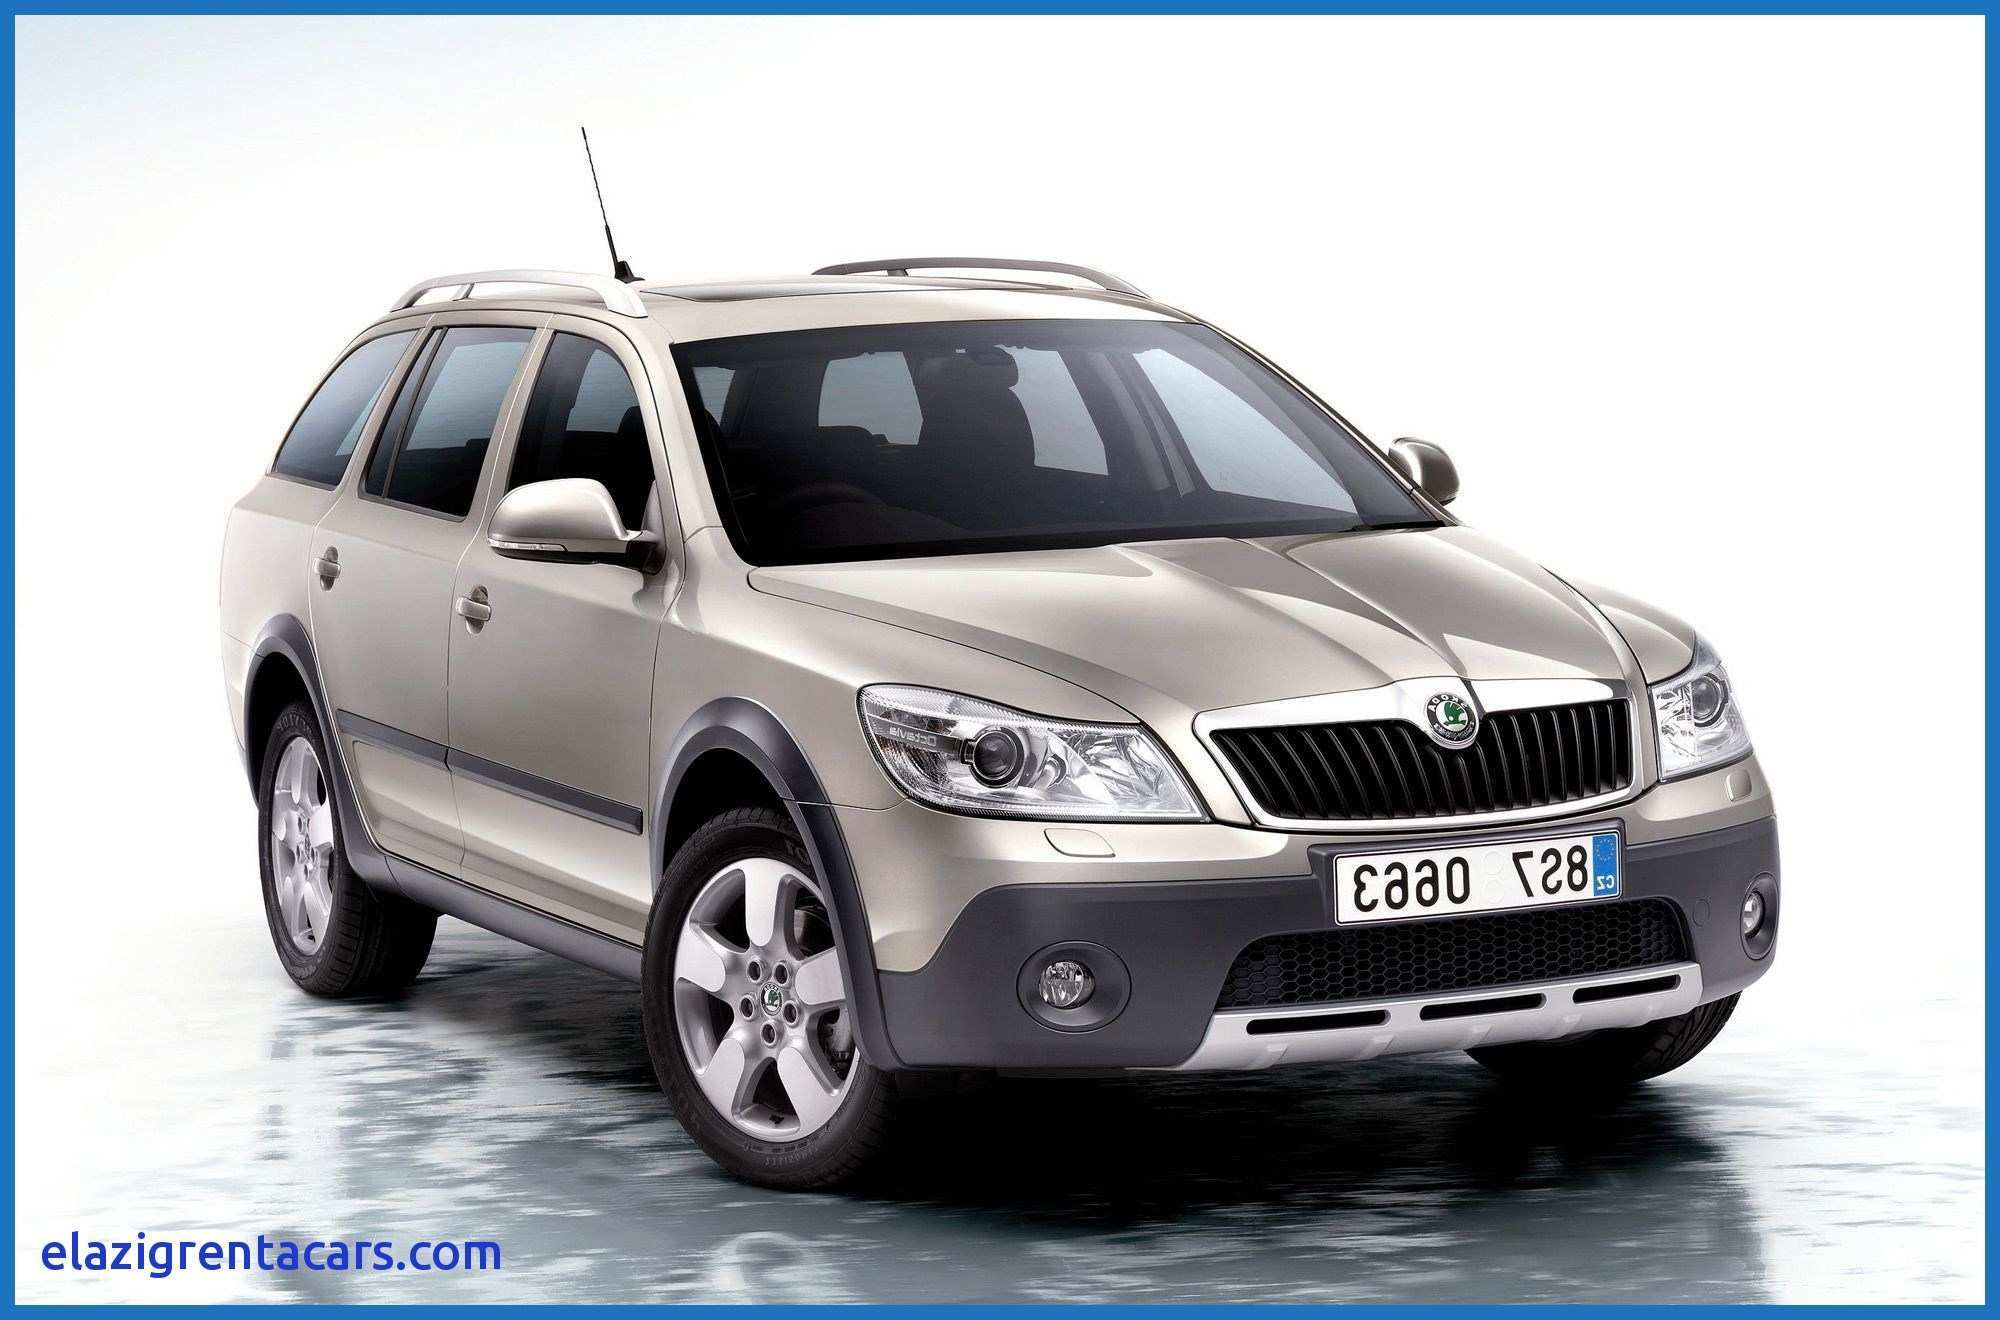 84 All New 2019 Skoda Snowman Price and Review with 2019 Skoda Snowman